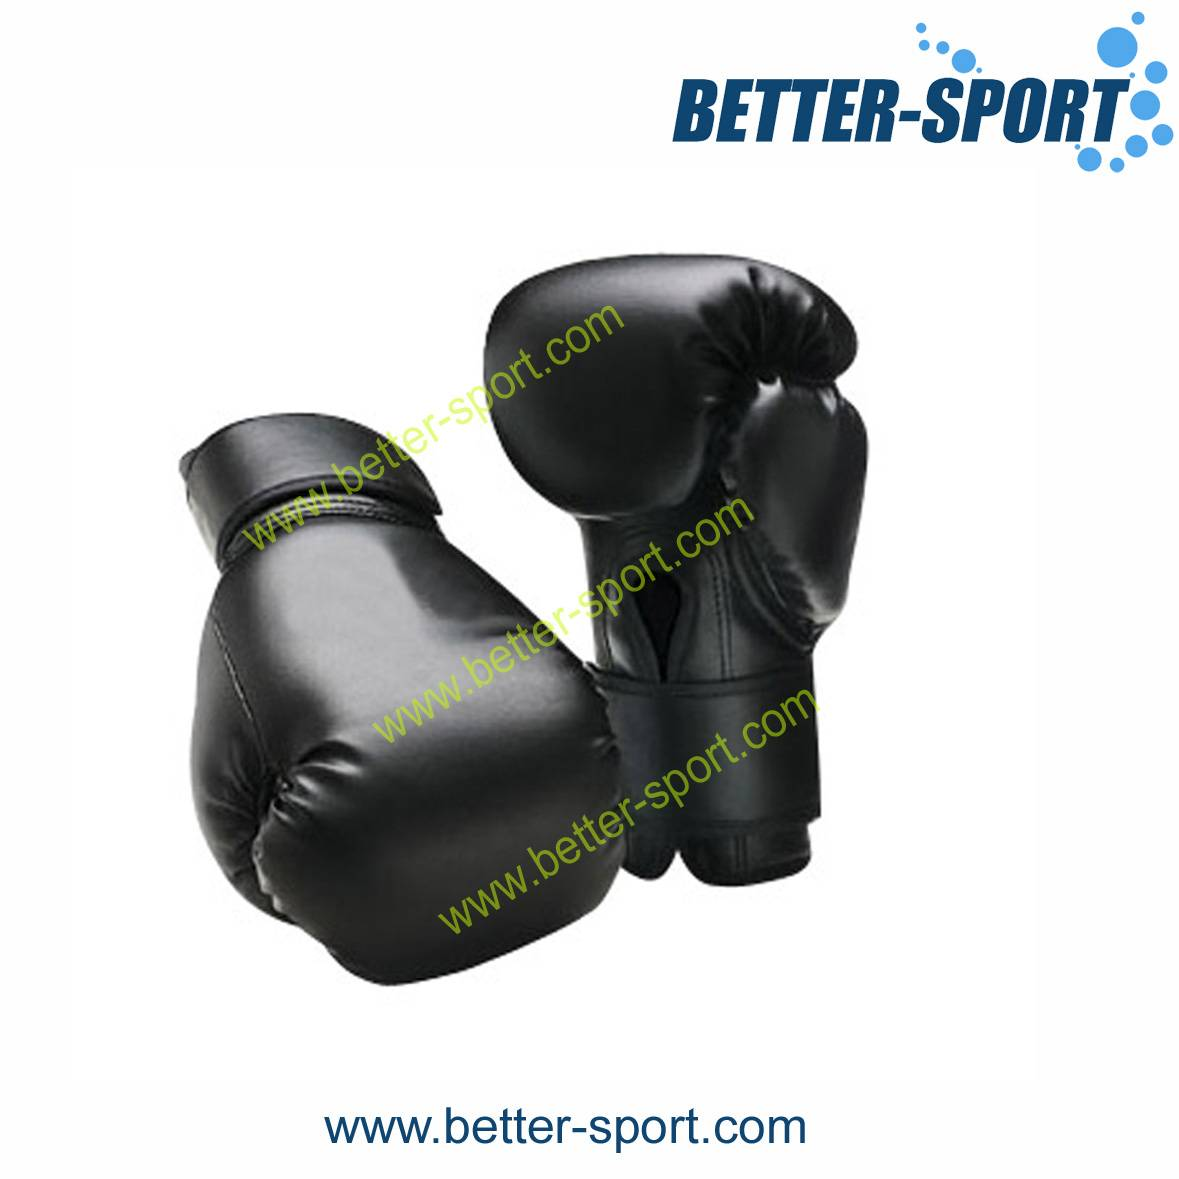 Boxing Glove, MMA Glove, Sparring Glove